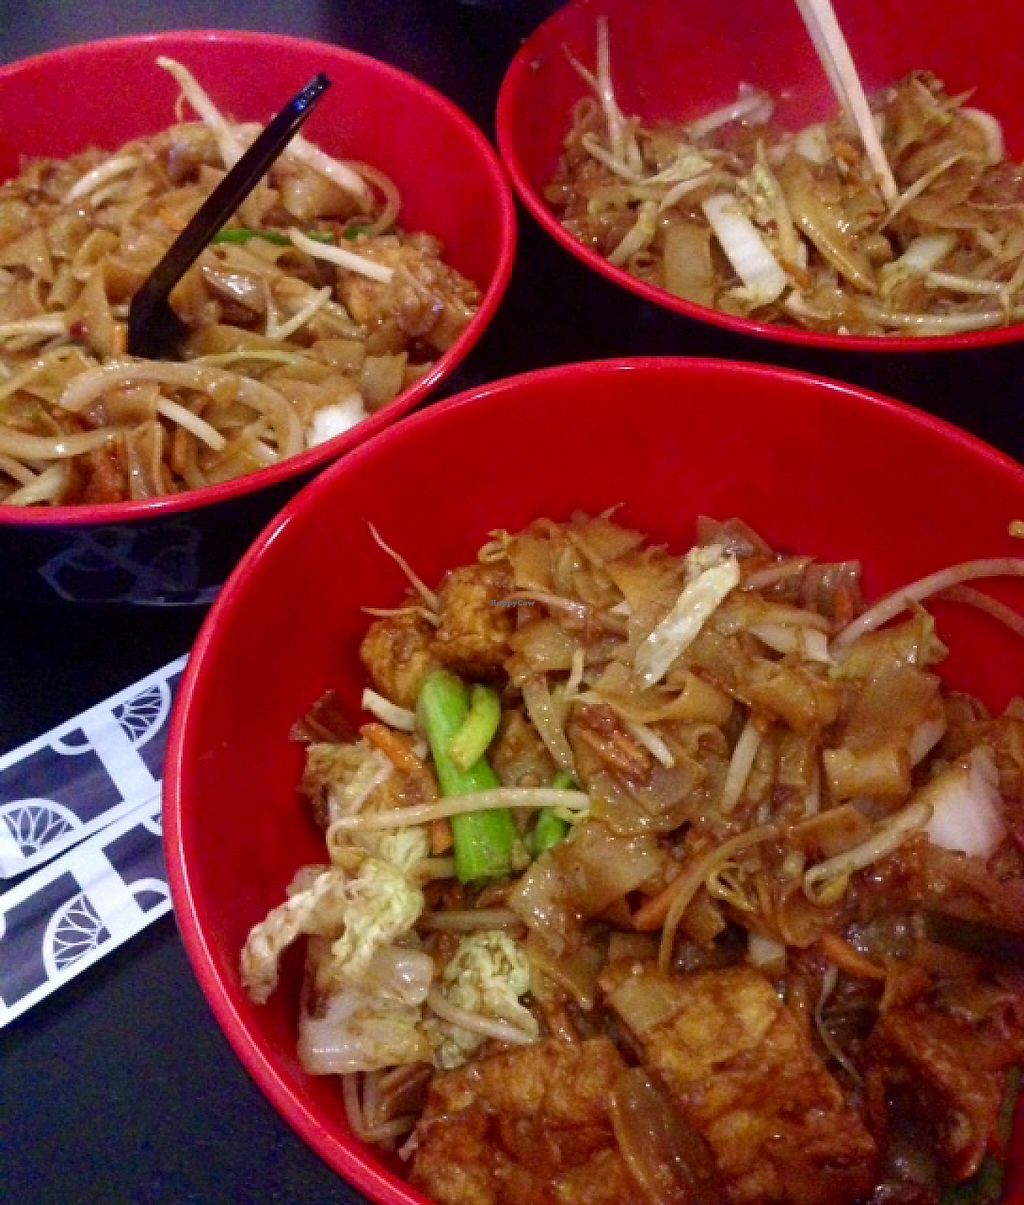 """Photo of Malay Kitchen Cork City  by <a href=""""/members/profile/Tamasin"""">Tamasin</a> <br/>Malay Kitchen Cork City, Ireland. Pretty much, has a tasty Tofu Vegan, lunchtime, cheap option, daily (5eu) <br/> May 15, 2017  - <a href='/contact/abuse/image/90868/259159'>Report</a>"""